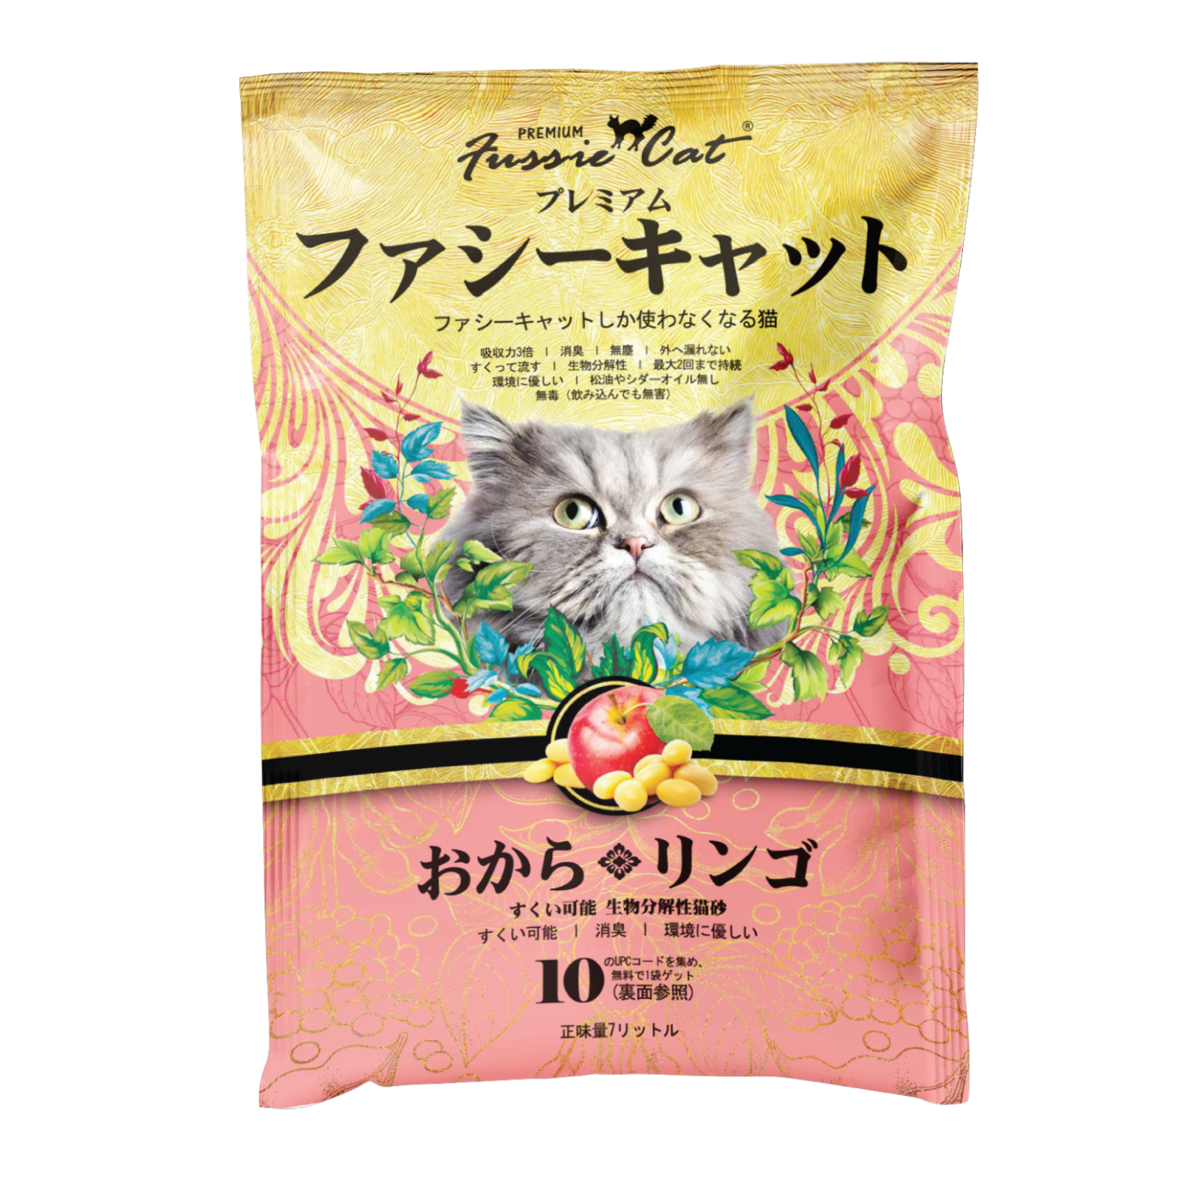 Fussie Cat Soybean Apple Litter (Japanese) 7L裝X 6 Bags